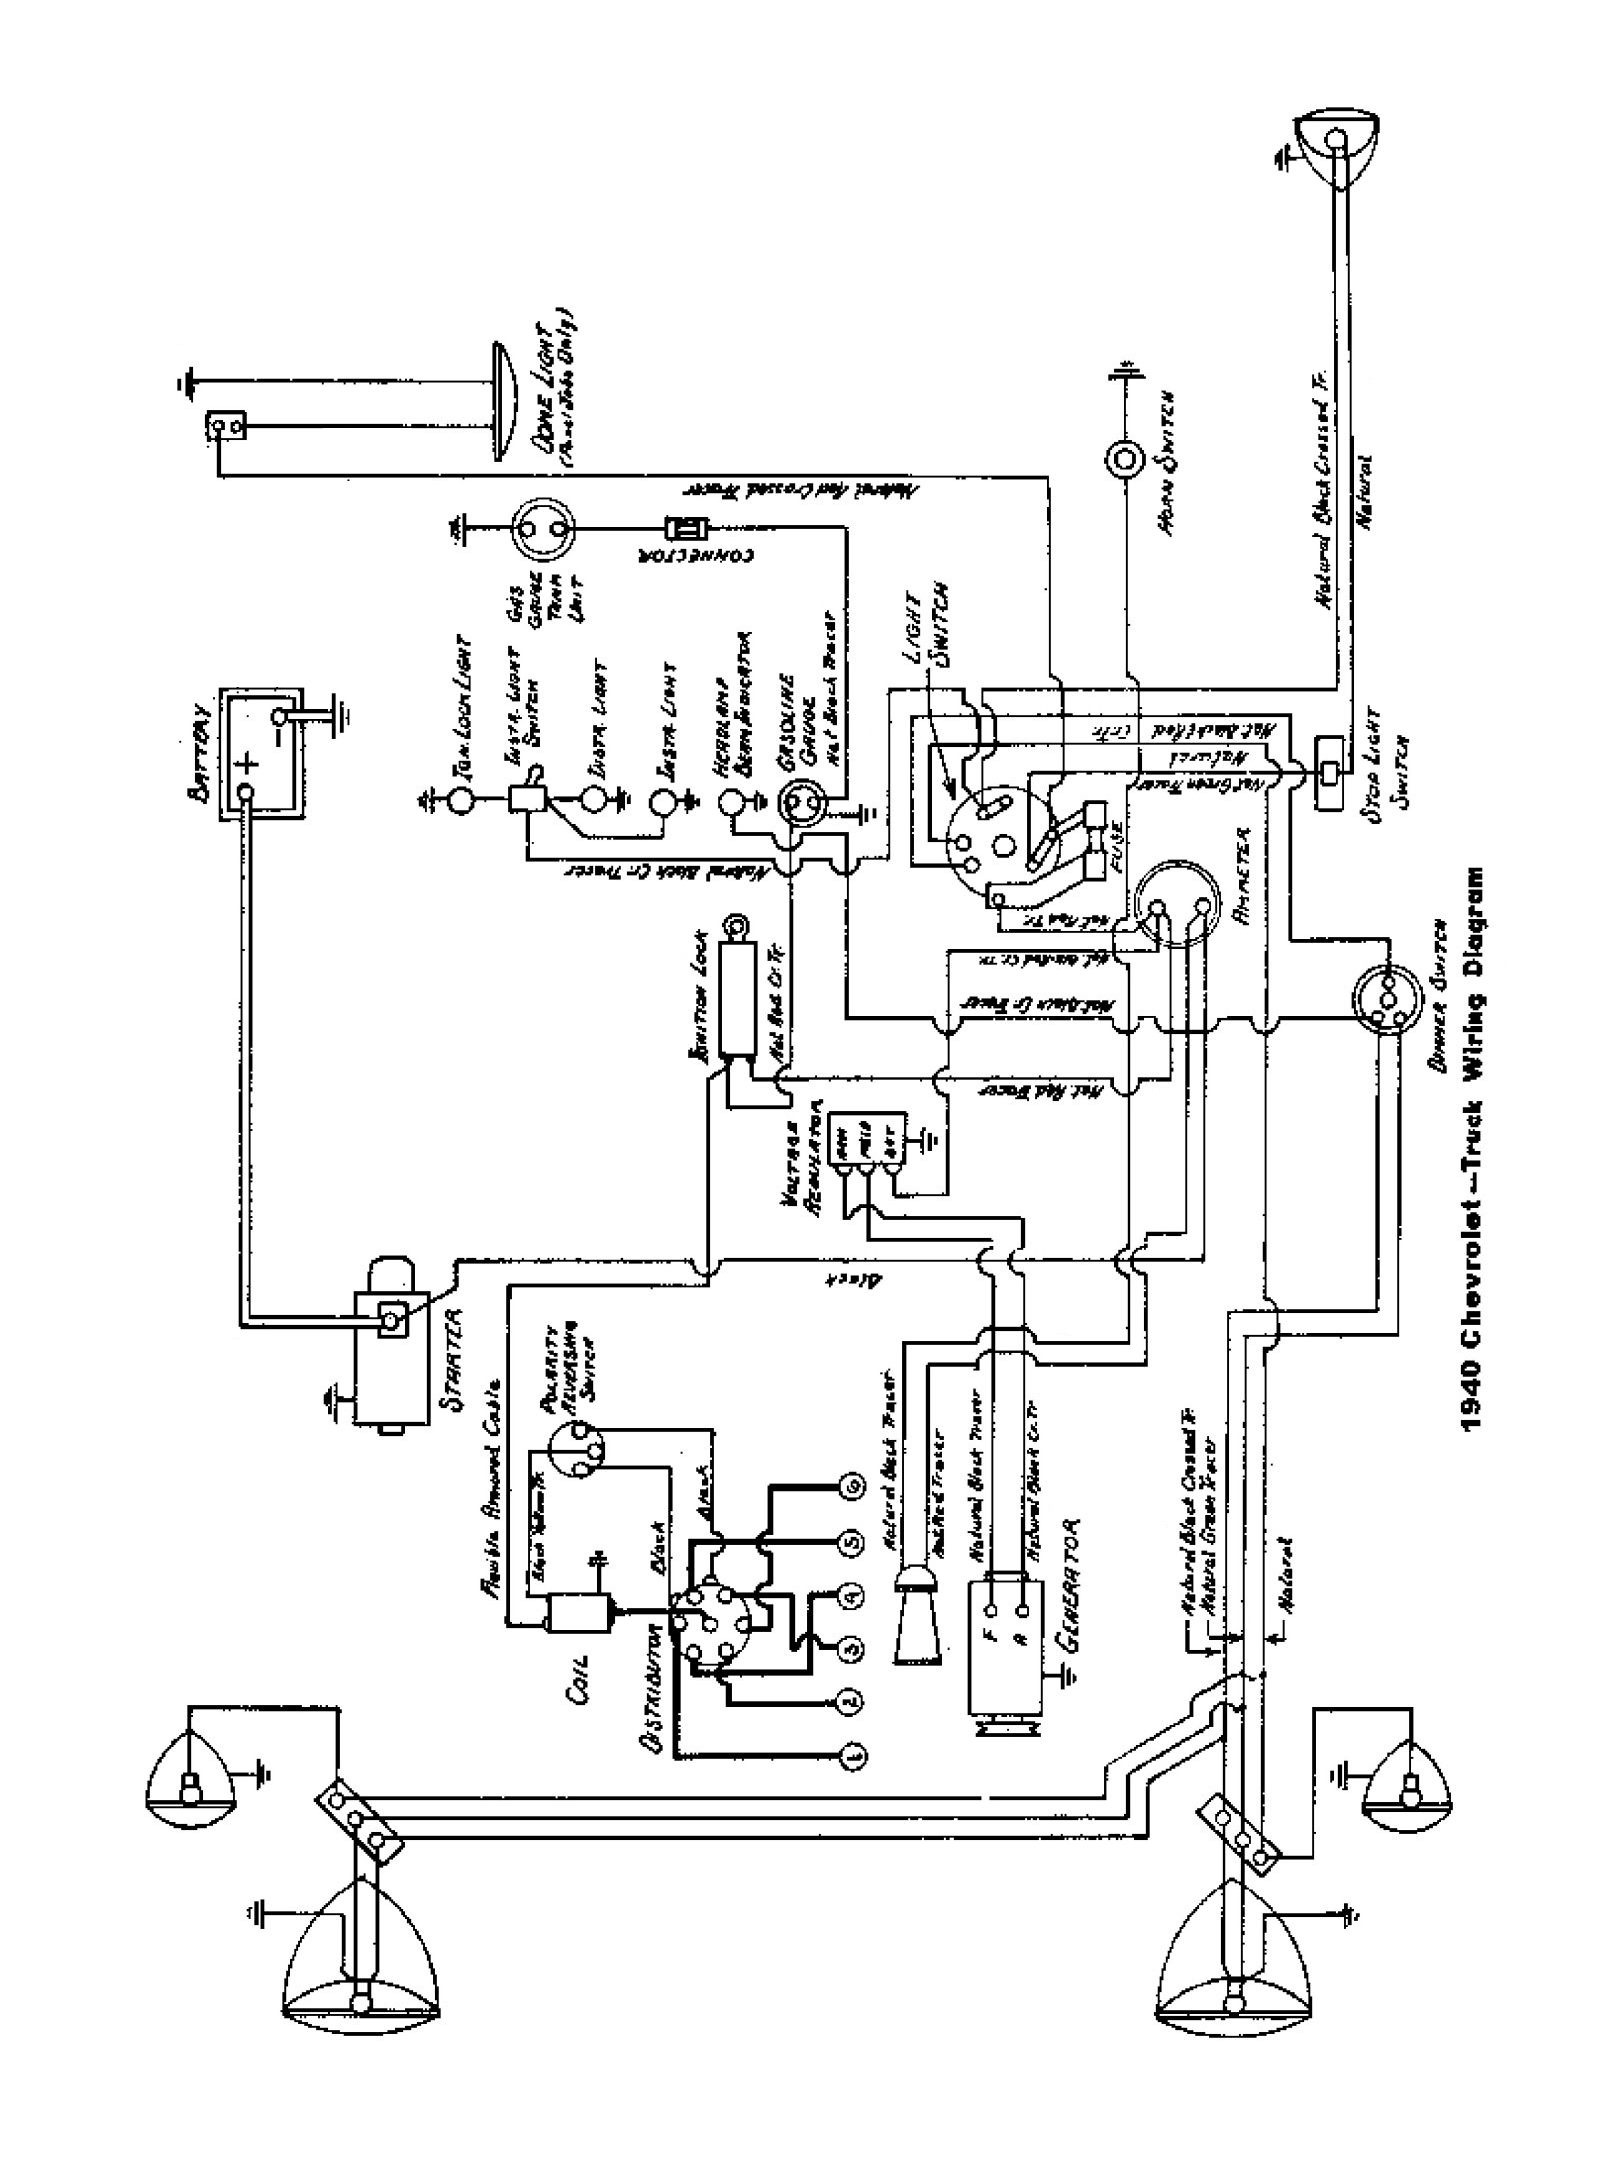 Ford Model T Assembly Line additionally Wiring likewise 1413513 also Packard Wiring Diagram besides 1950 Desoto Wiring Diagram. on 1949 packard engine diagram